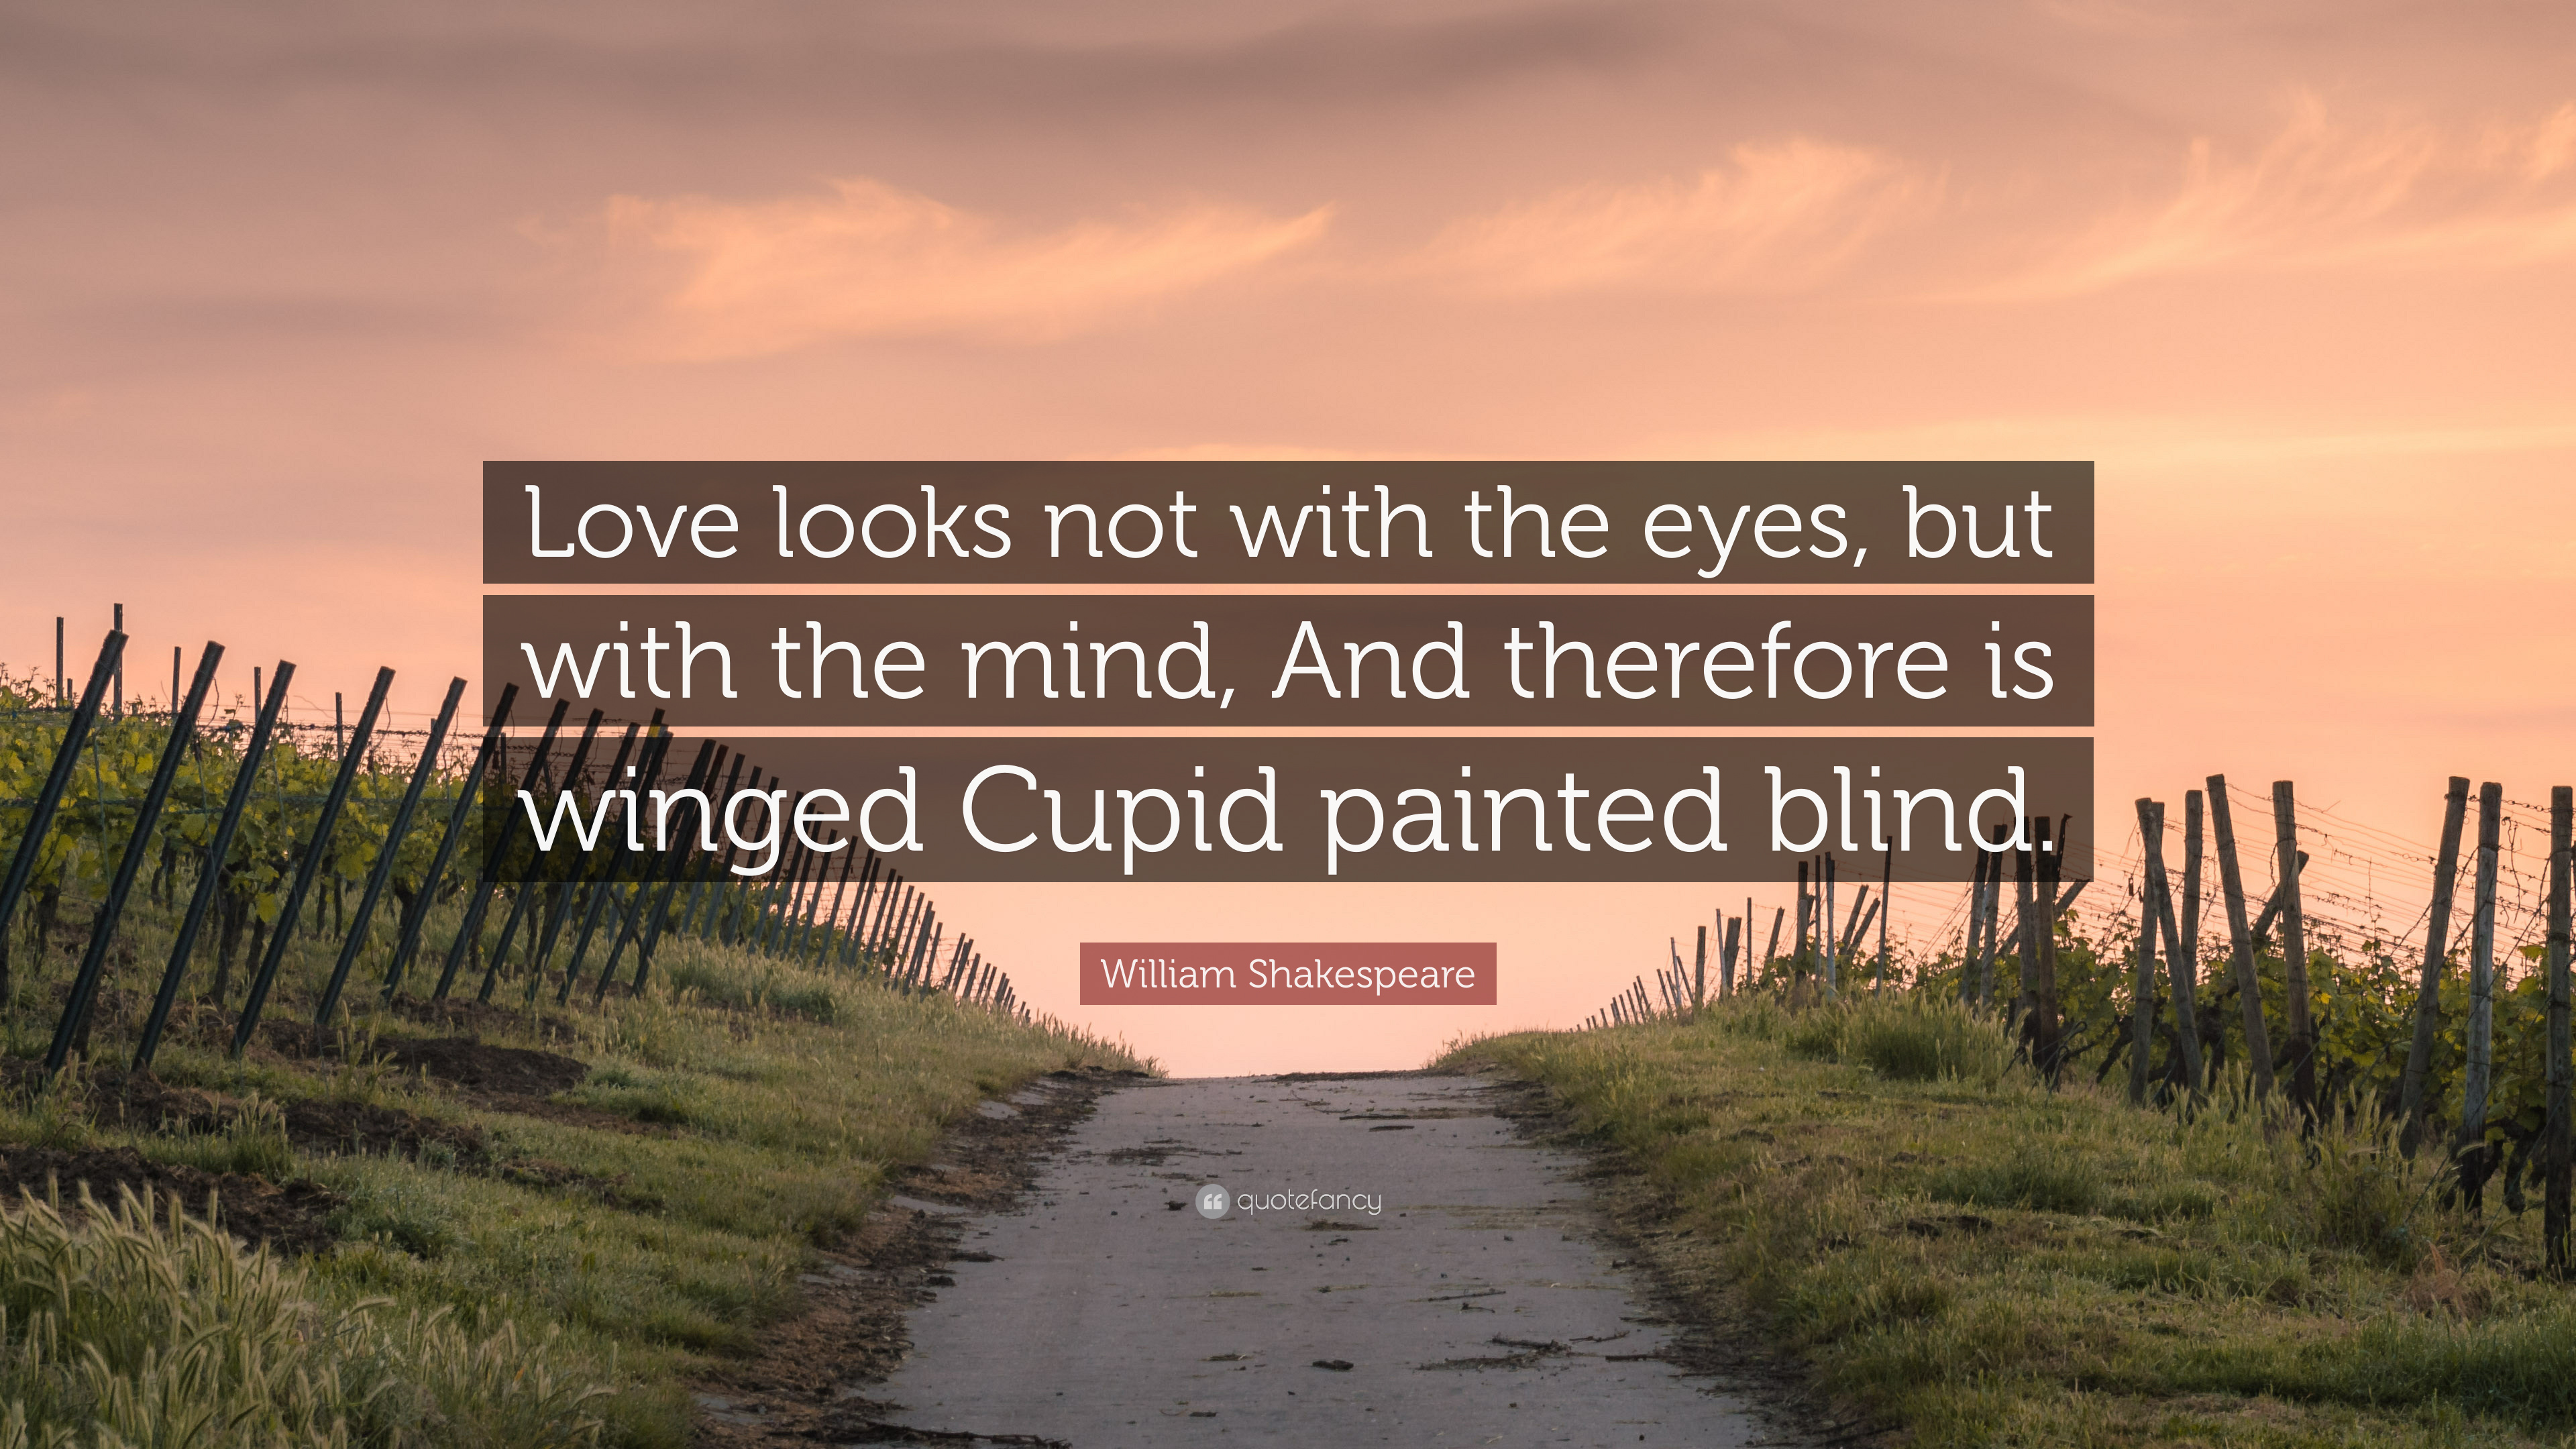 William Shakespeare Quote: Love looks not with the eyes